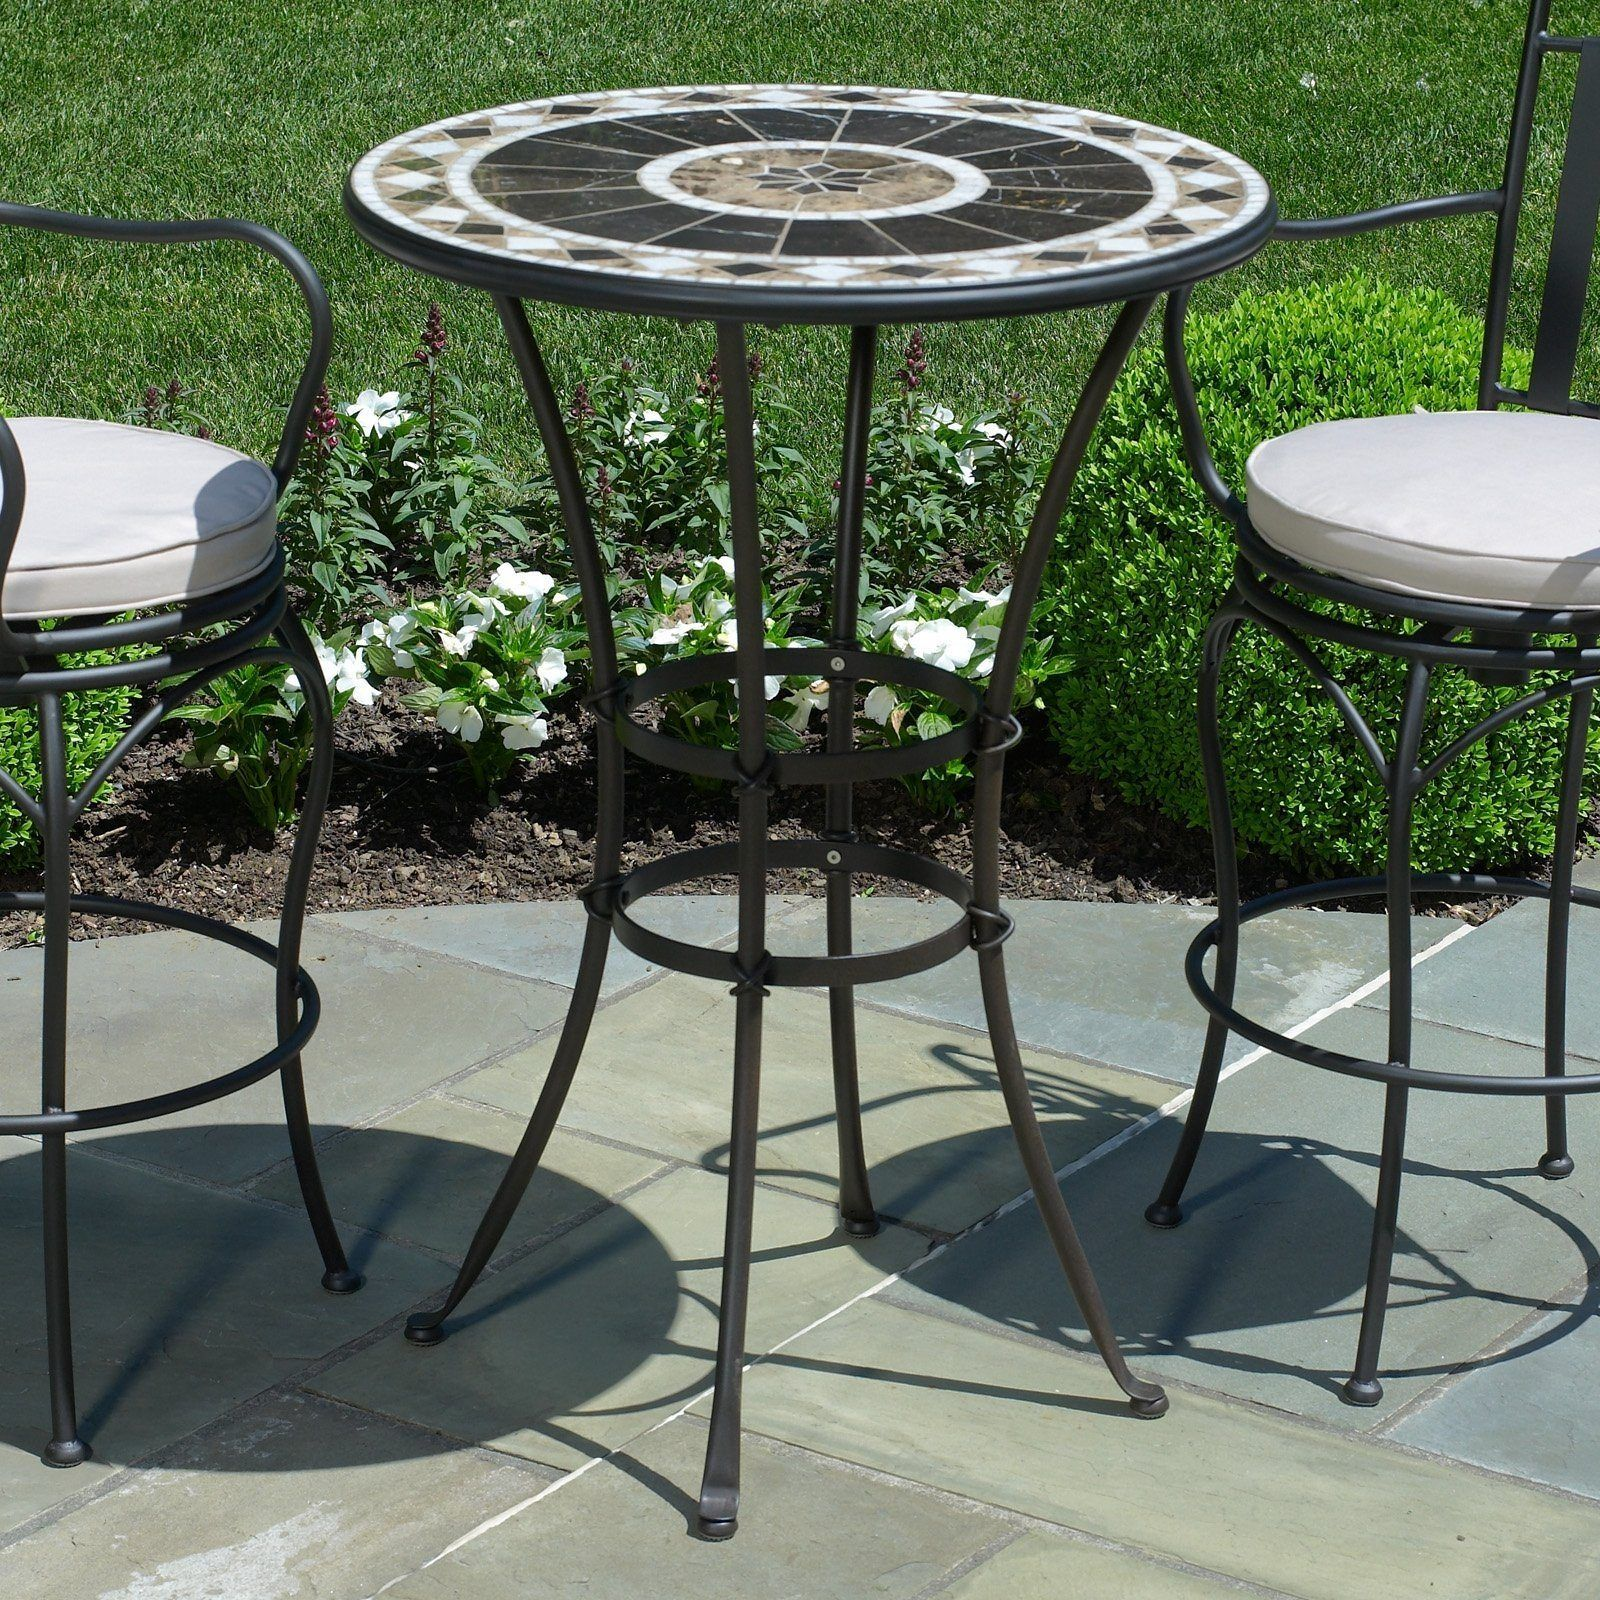 Outdoor Bar Stools And Table   Stuhlede.com